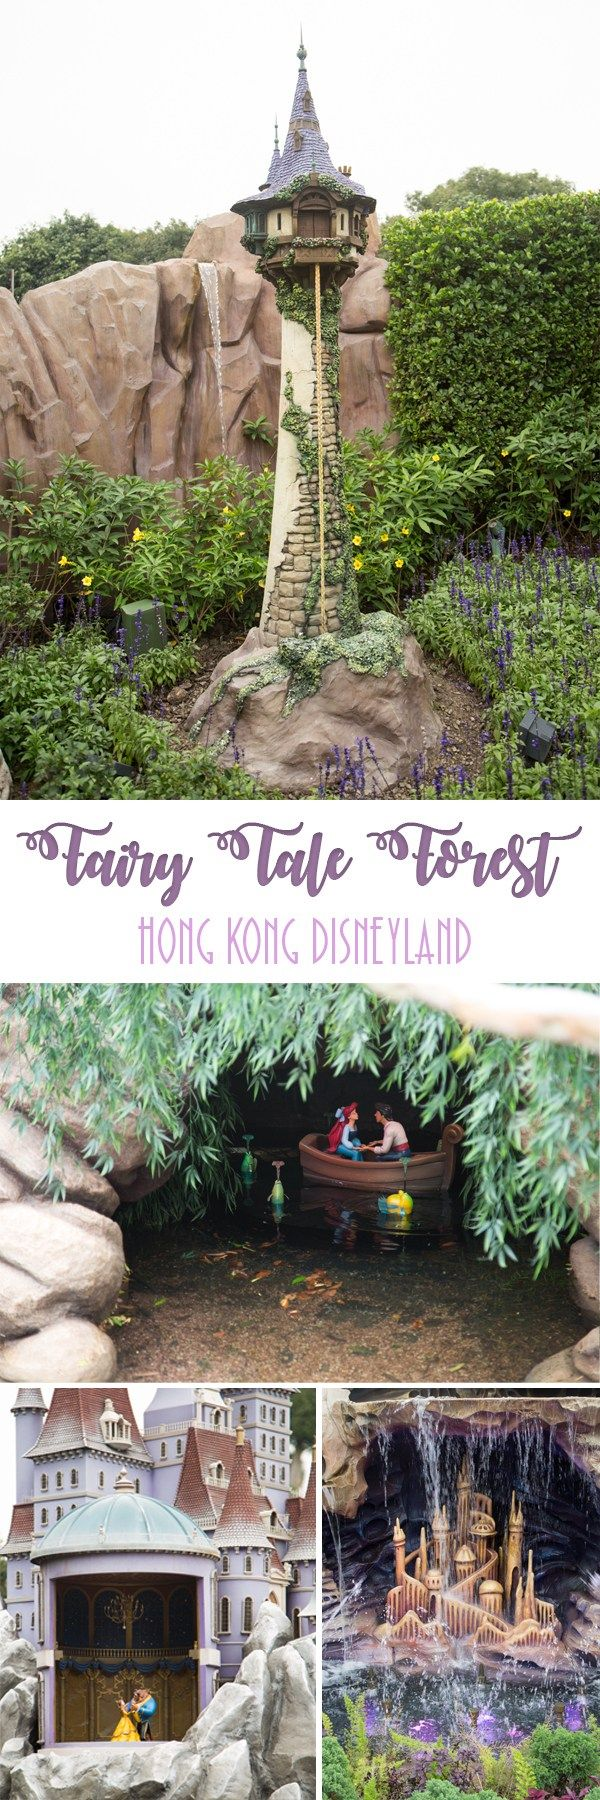 Fairy Tale Forest Fairy Tale Forest is exclusive to Hong Kong Disneyland. You can find itat the entranceof Fantasyland coming from Adventureland or Toy Storyland. Here you can see miniature movie scenes from all your favorite Disney fairy tale stories. ... Read More